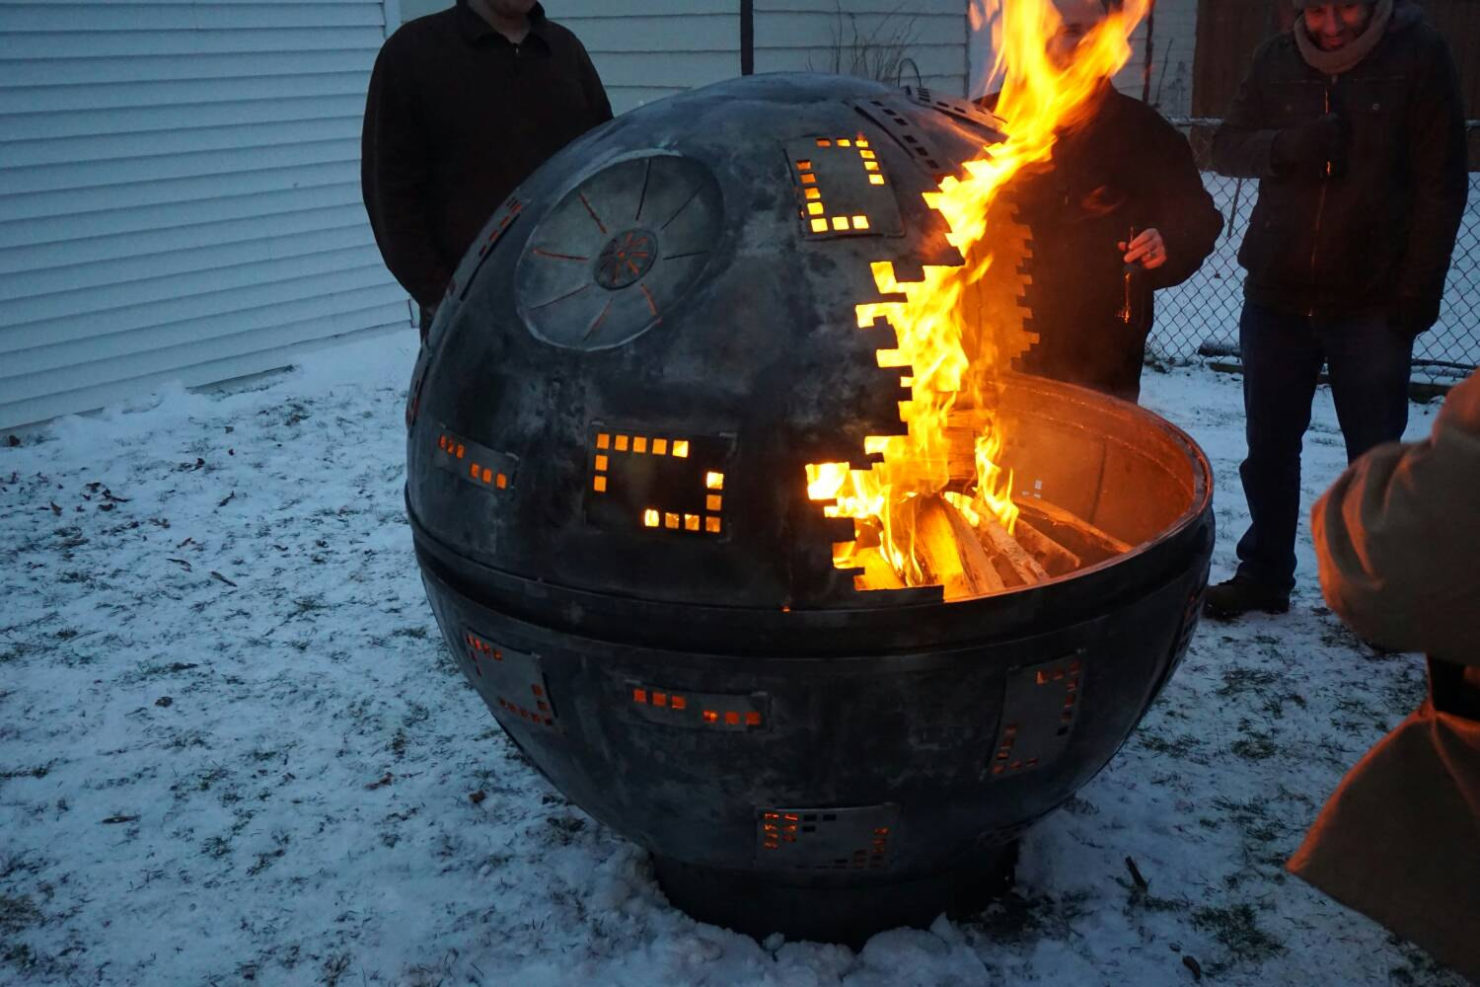 Death Star, Star Wars Last Jedi, Holiday